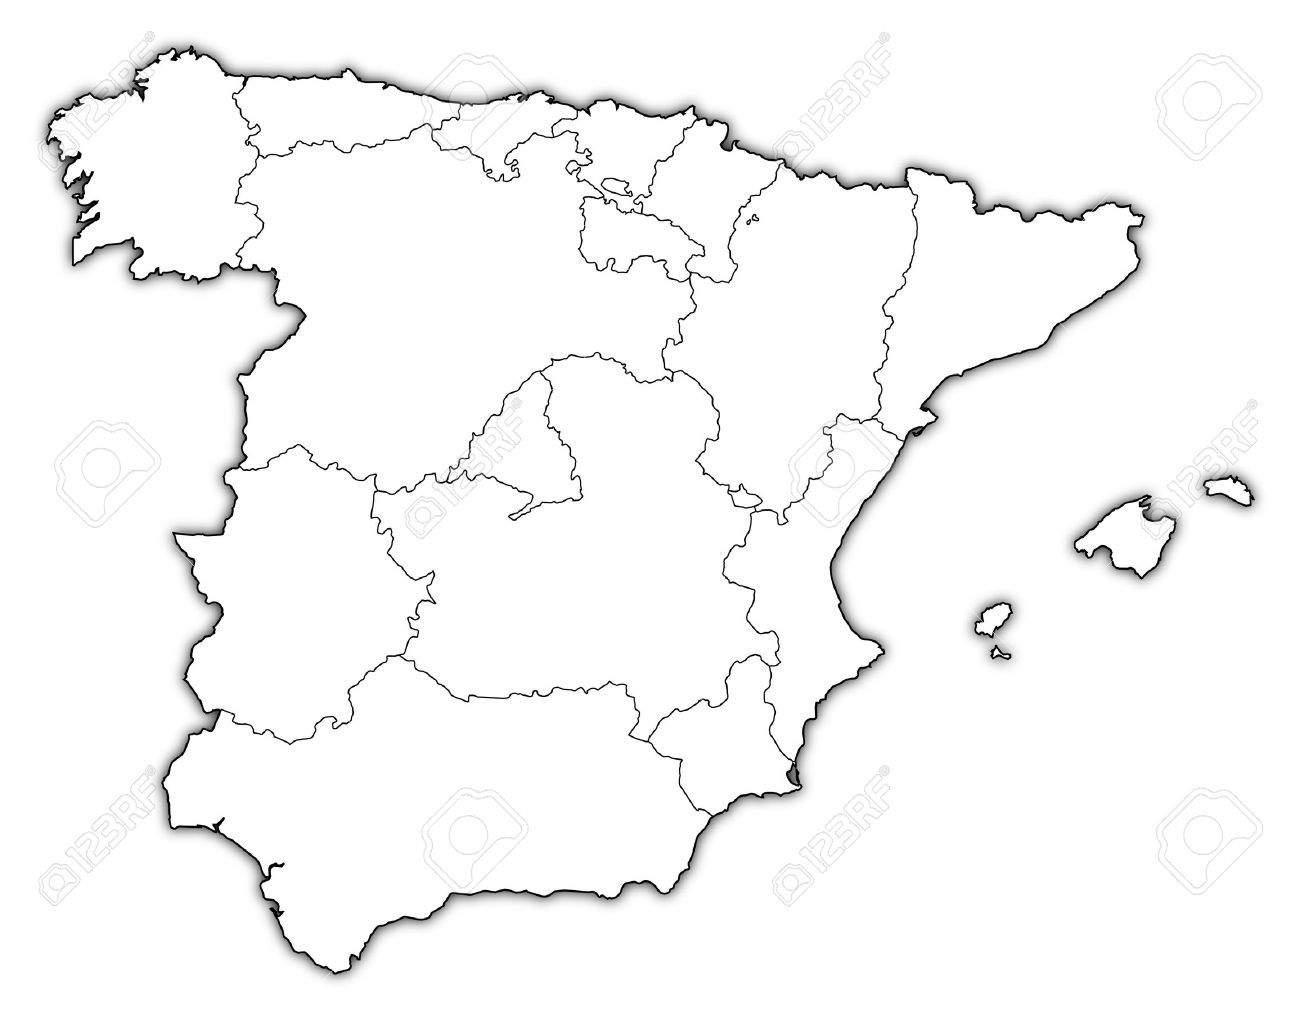 Political Map Of Spain With The Several Regions Royalty Free - Spain regions map